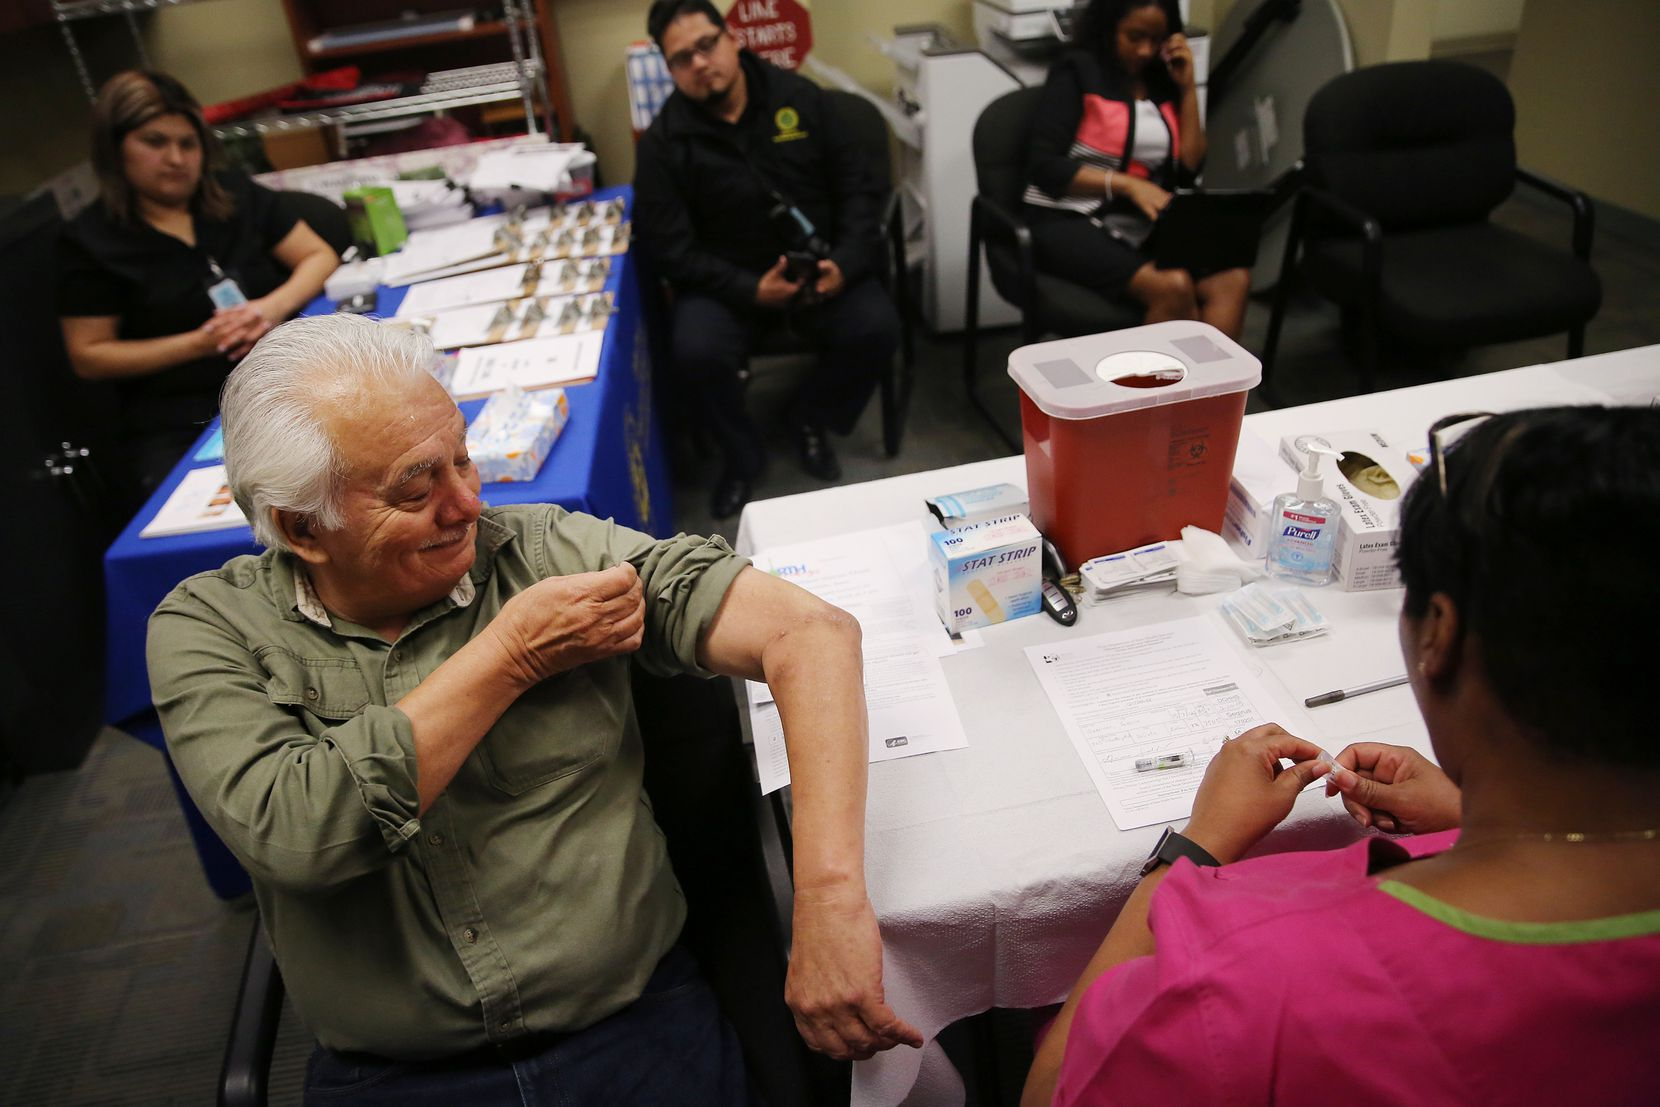 Gavino Saldivar, of DeSoto, Texas, lifts his sleeve up before receiving an influenza vaccine from Barbara Davis (right), a registered nurse, at a mobile immunization clinic hosted by Dallas County Health and Human Services at the DeSoto Senior Center in DeSoto Tuesday February 20, 2018. According to Renae Crutchfield, public information officer for Dallas County Health and Human Services, the county was focusing on reaching the elderly since that population is the most vulnerable to the influenza.